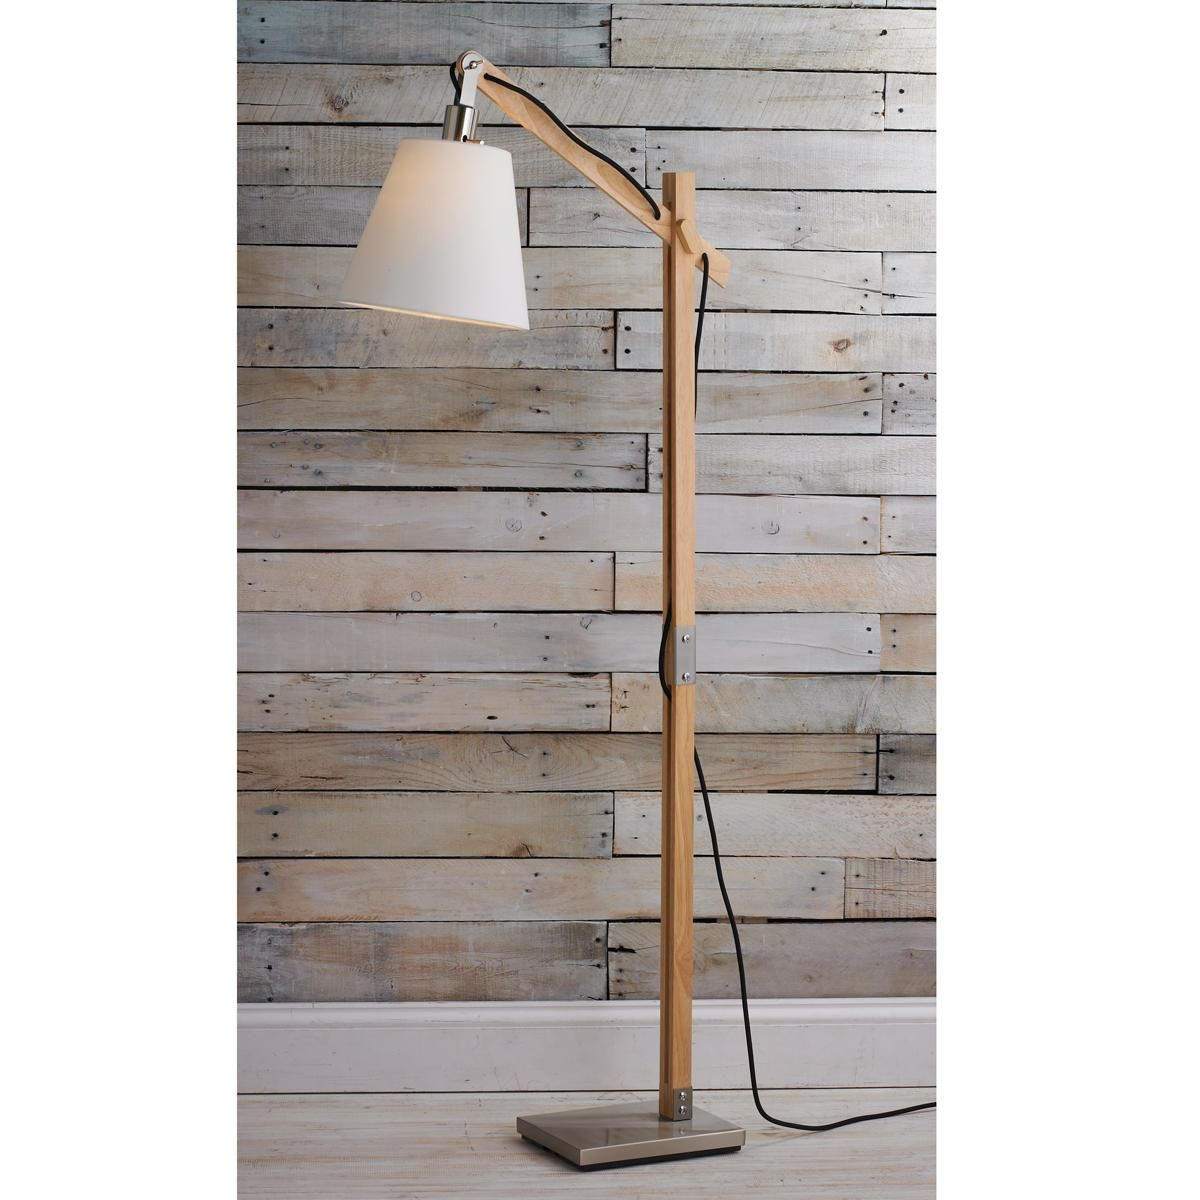 warm shades for eflyg image decor beds floor of lamp rustic interior floors